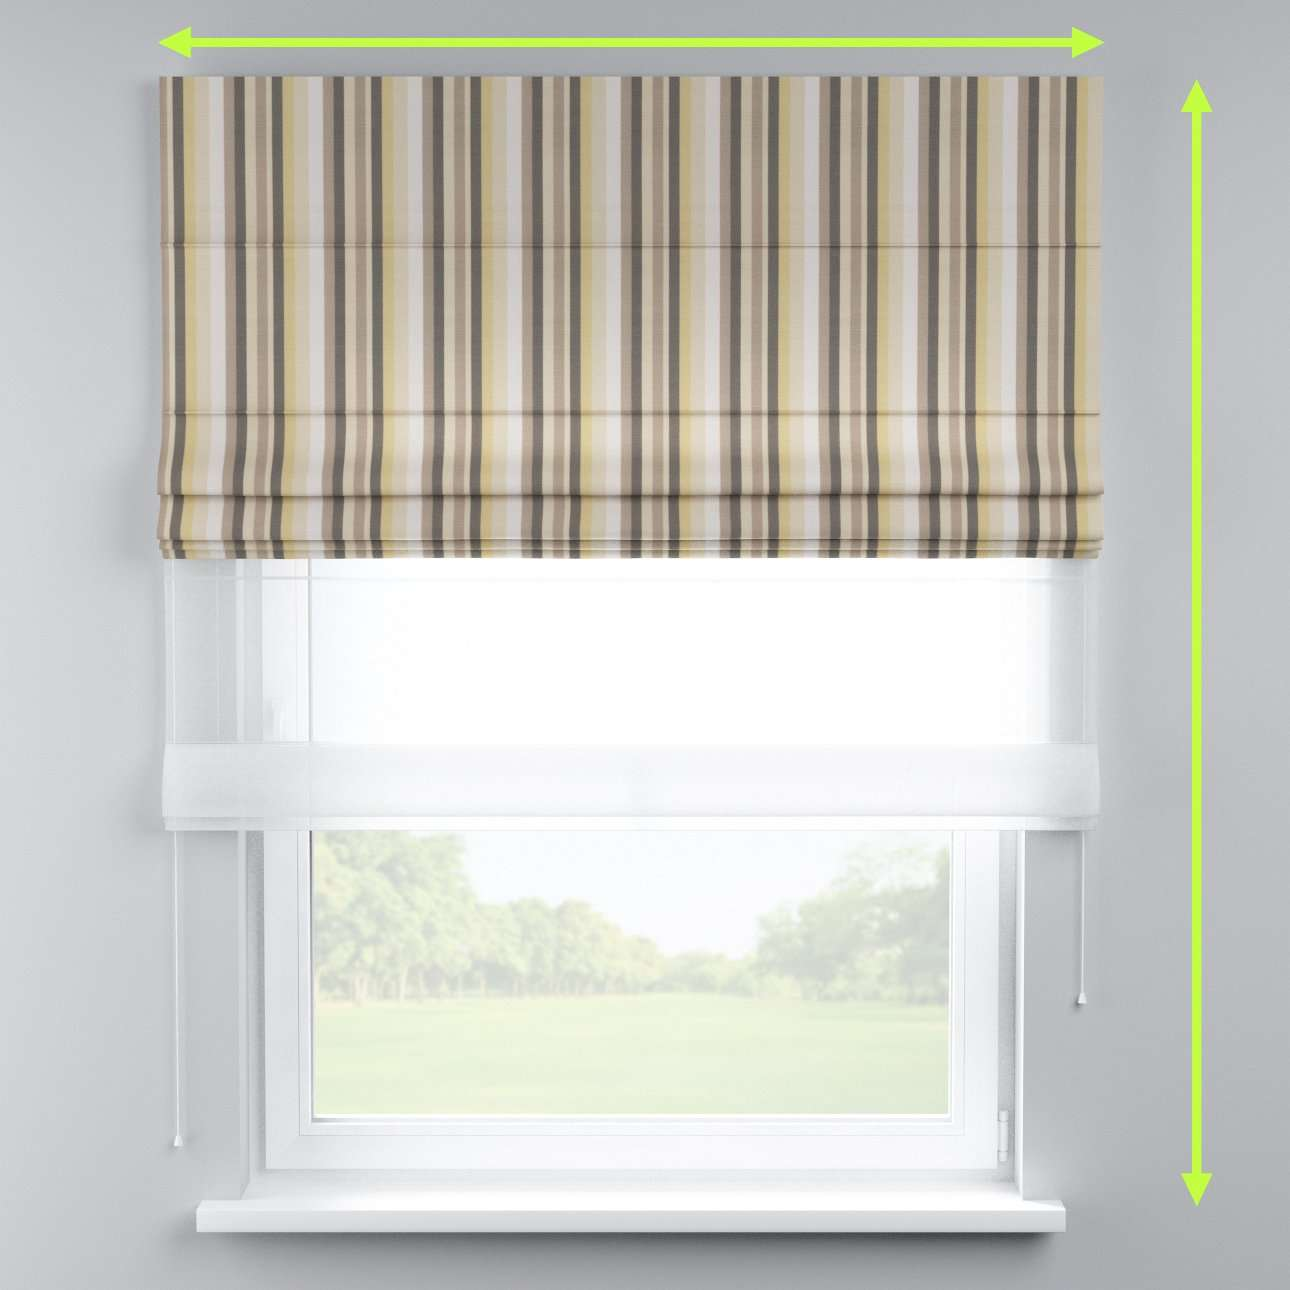 Voile and fabric roman blind (DUO II) in collection Norge, fabric: 140-80